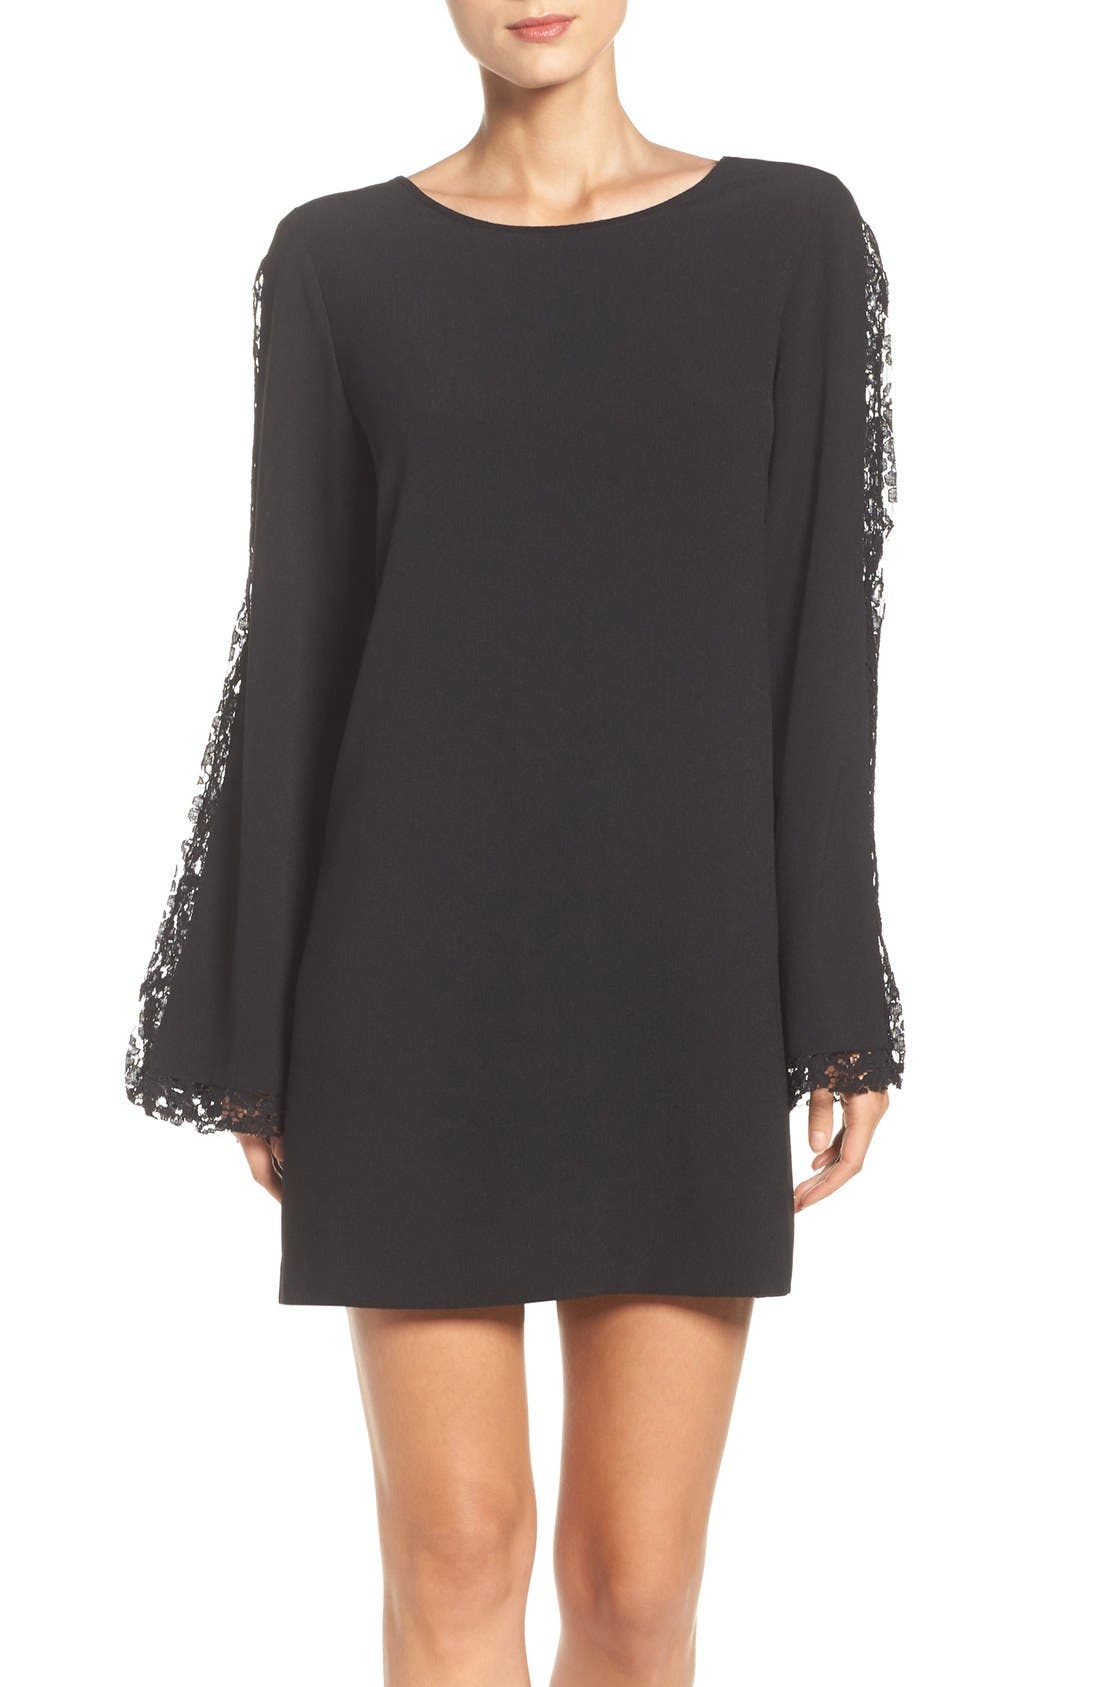 Alternate Image 1 Selected - Felicity & Coco Lacey Bell Sleeve Shift Dress (Nordstrom Exclusive)